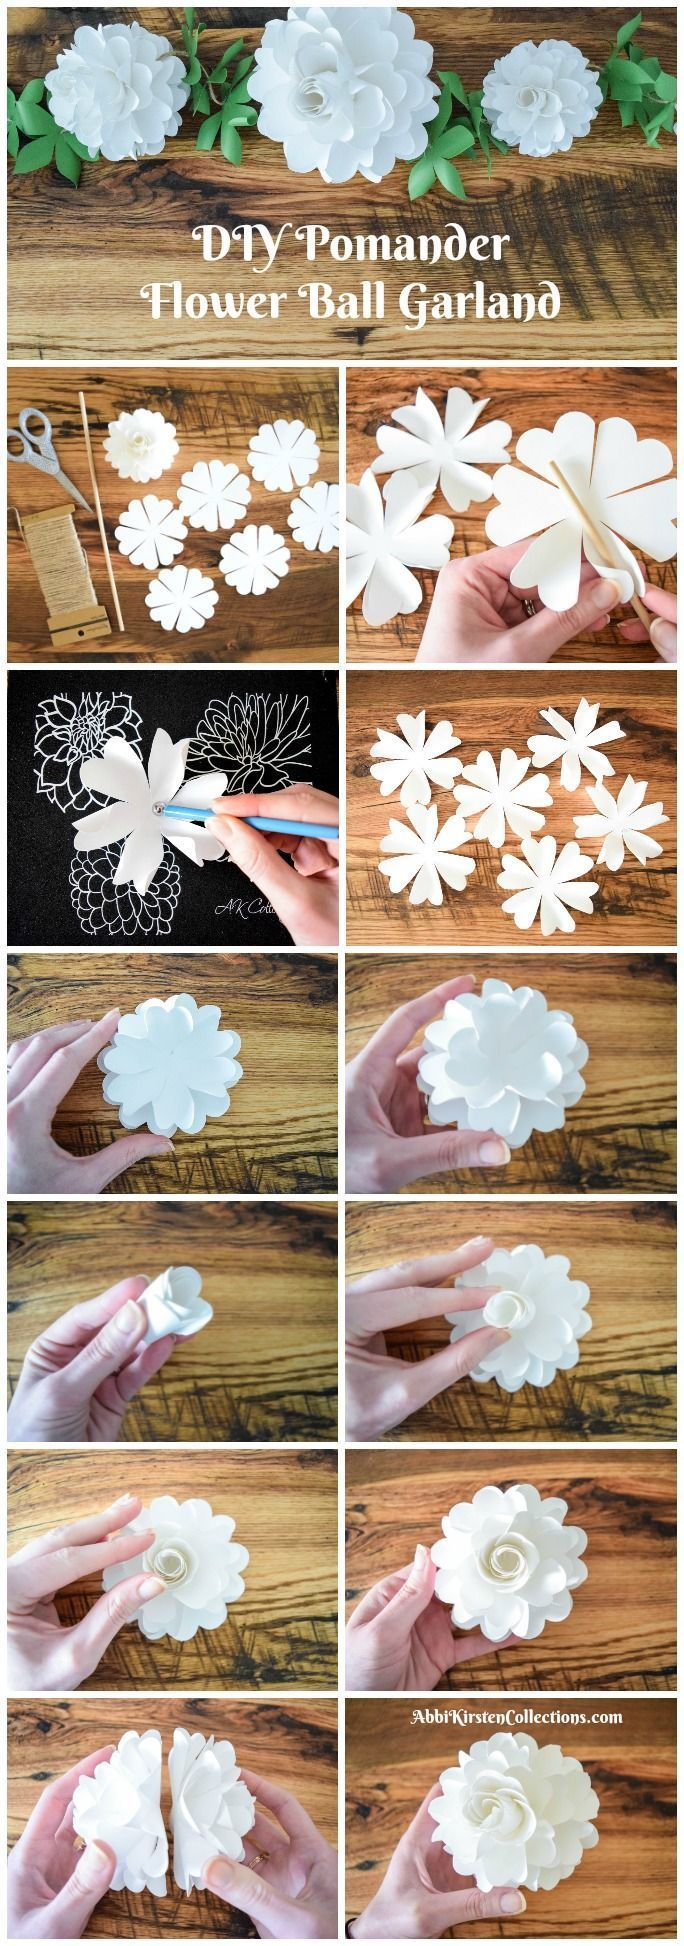 How to make paper flower balls step by step tutorial in 2018 how to make paper flower balls step by step tutorial mightylinksfo